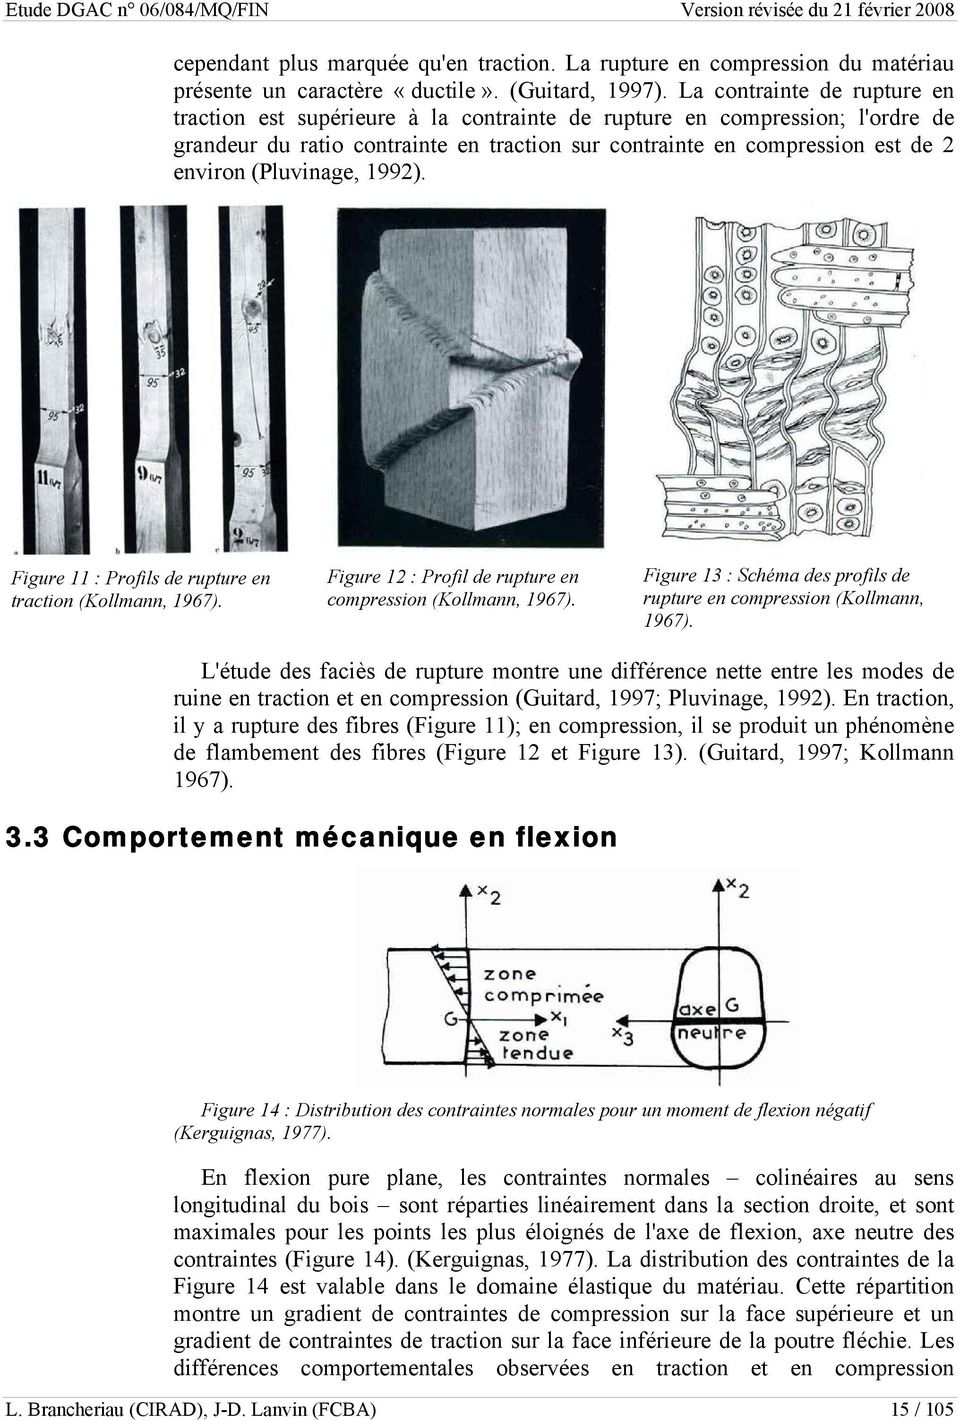 (Pluvinage, 1992). Figure 11 : Profils de rupture en traction (Kollmann, 1967). Figure 12 : Profil de rupture en compression (Kollmann, 1967).